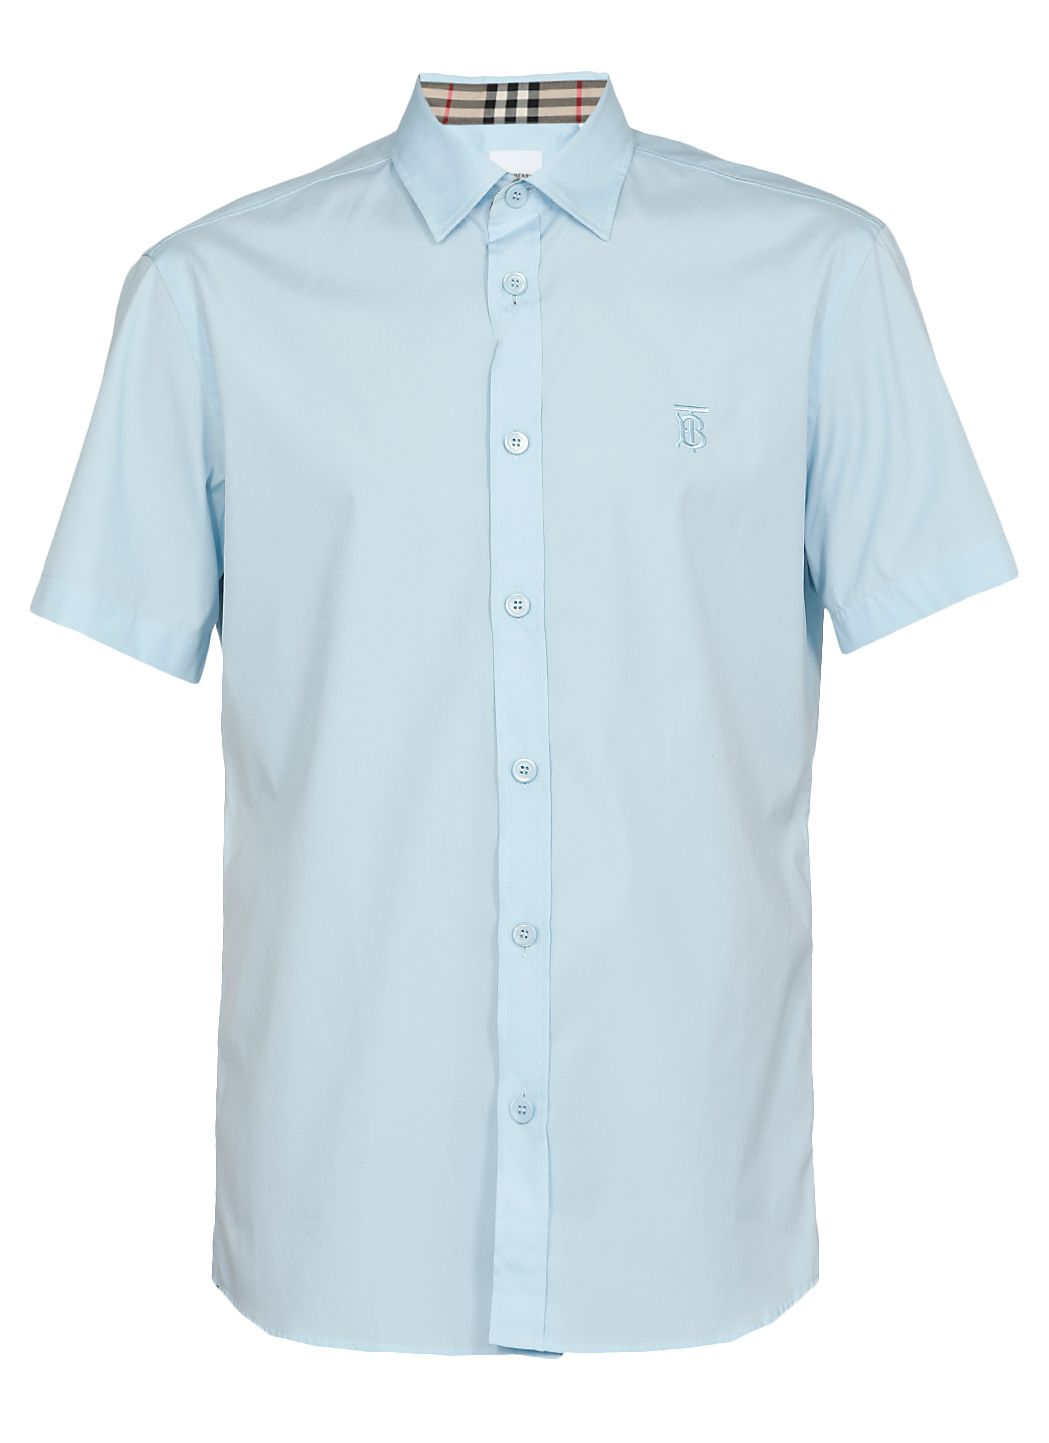 Cotton shirt with monogram